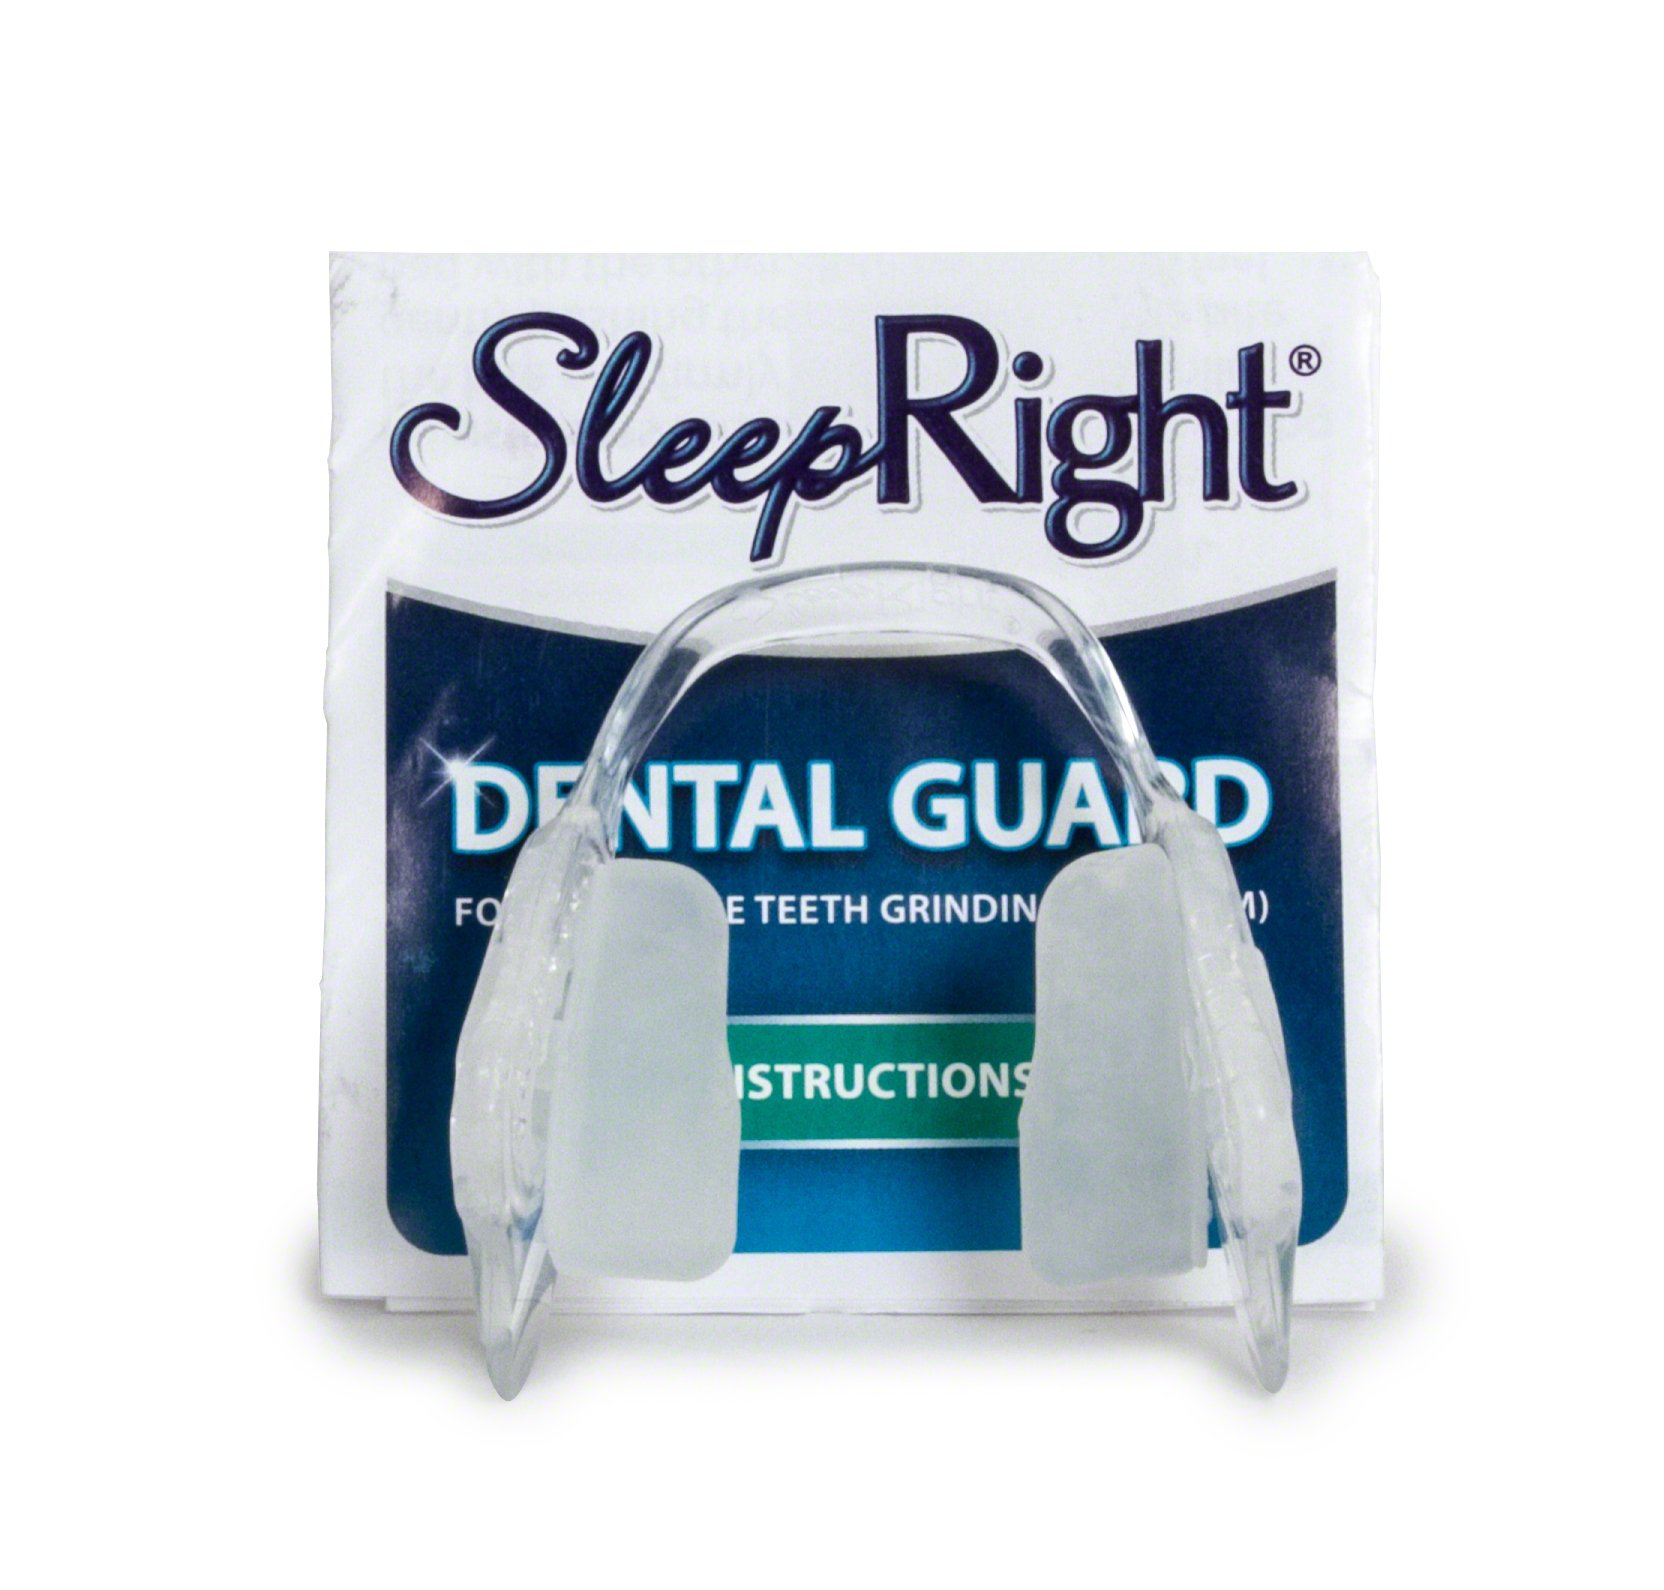 SleepRight Secure-Comfort Dental Guard – Mouth Guard To Prevent Teeth Grinding – SleepRight No Boil Dental Guard by SleepRight (Image #3)